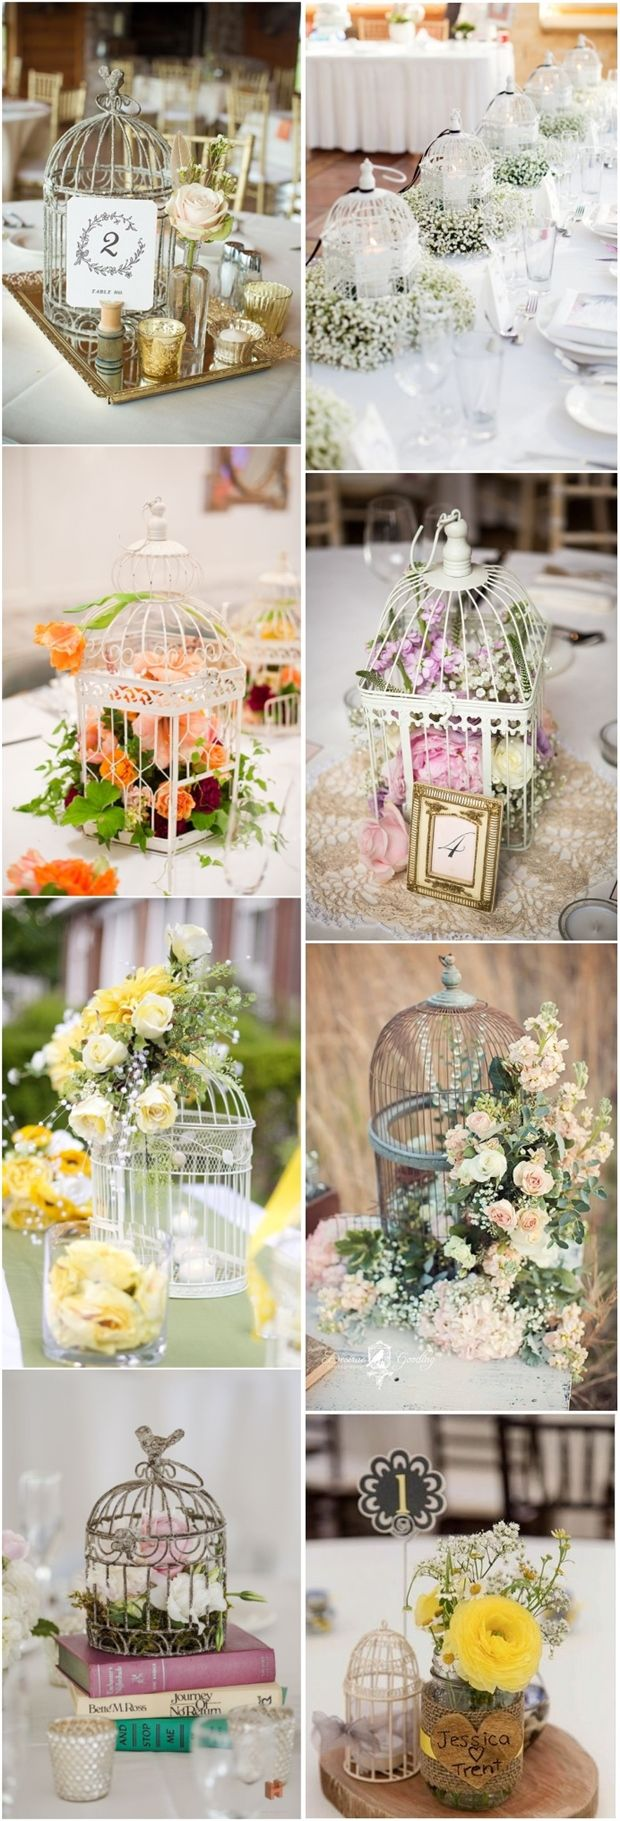 25 Truly Amazing Birdcage Wedding Centerpieces With Tutrial